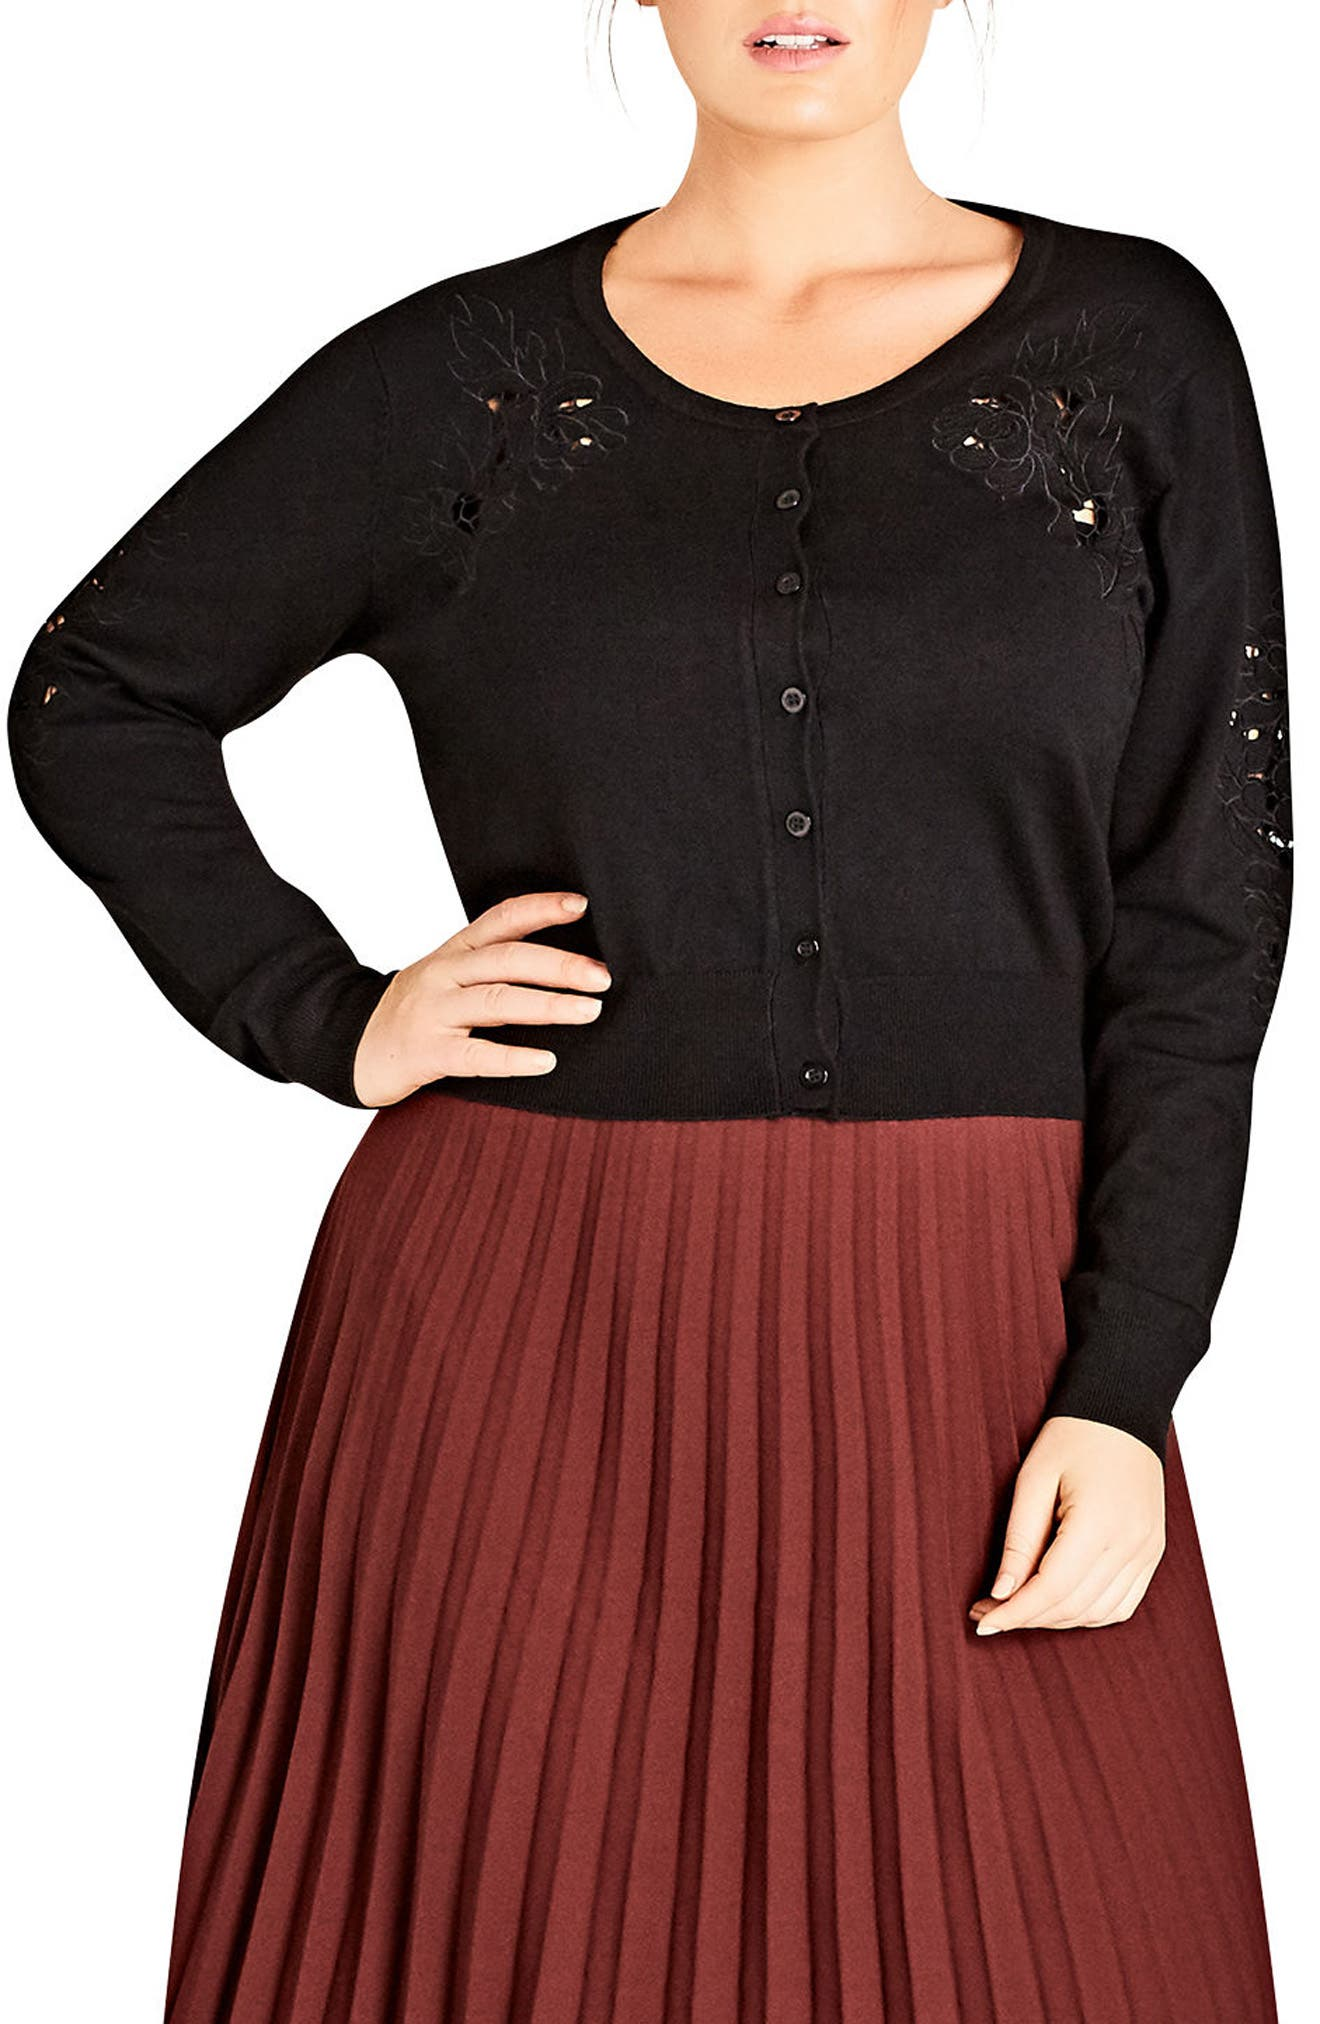 Alternate Image 1 Selected - City Chic Sweet Appliqué Crop Cardigan (Plus Size)